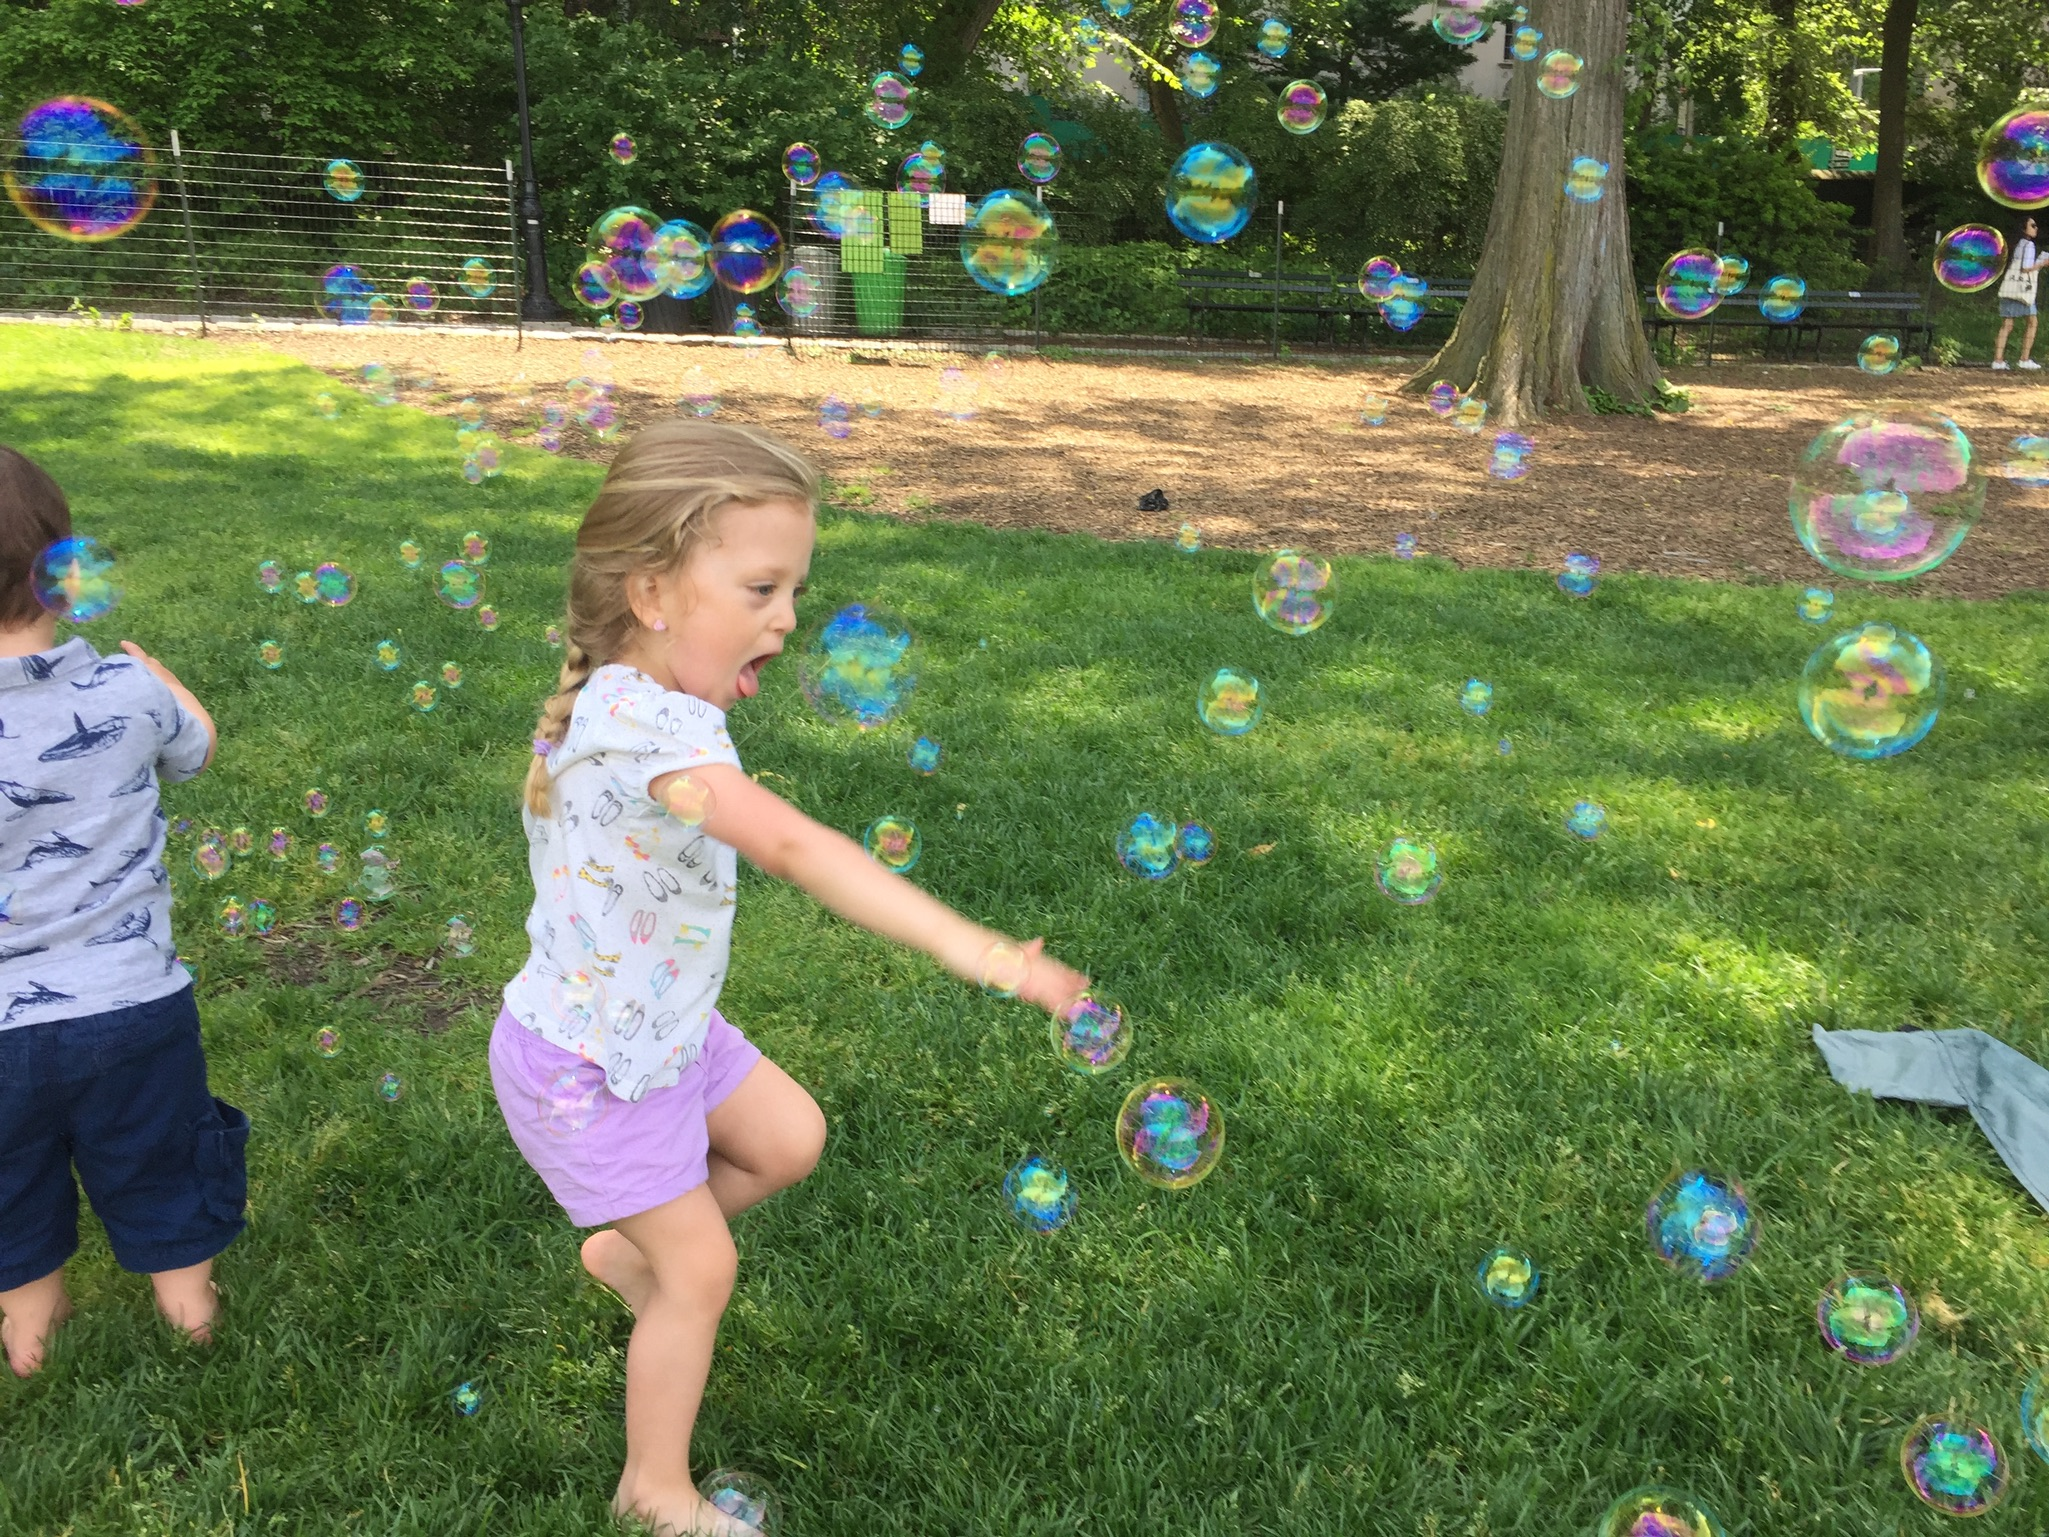 Someone had a bubble machine at the Park! What JOY!